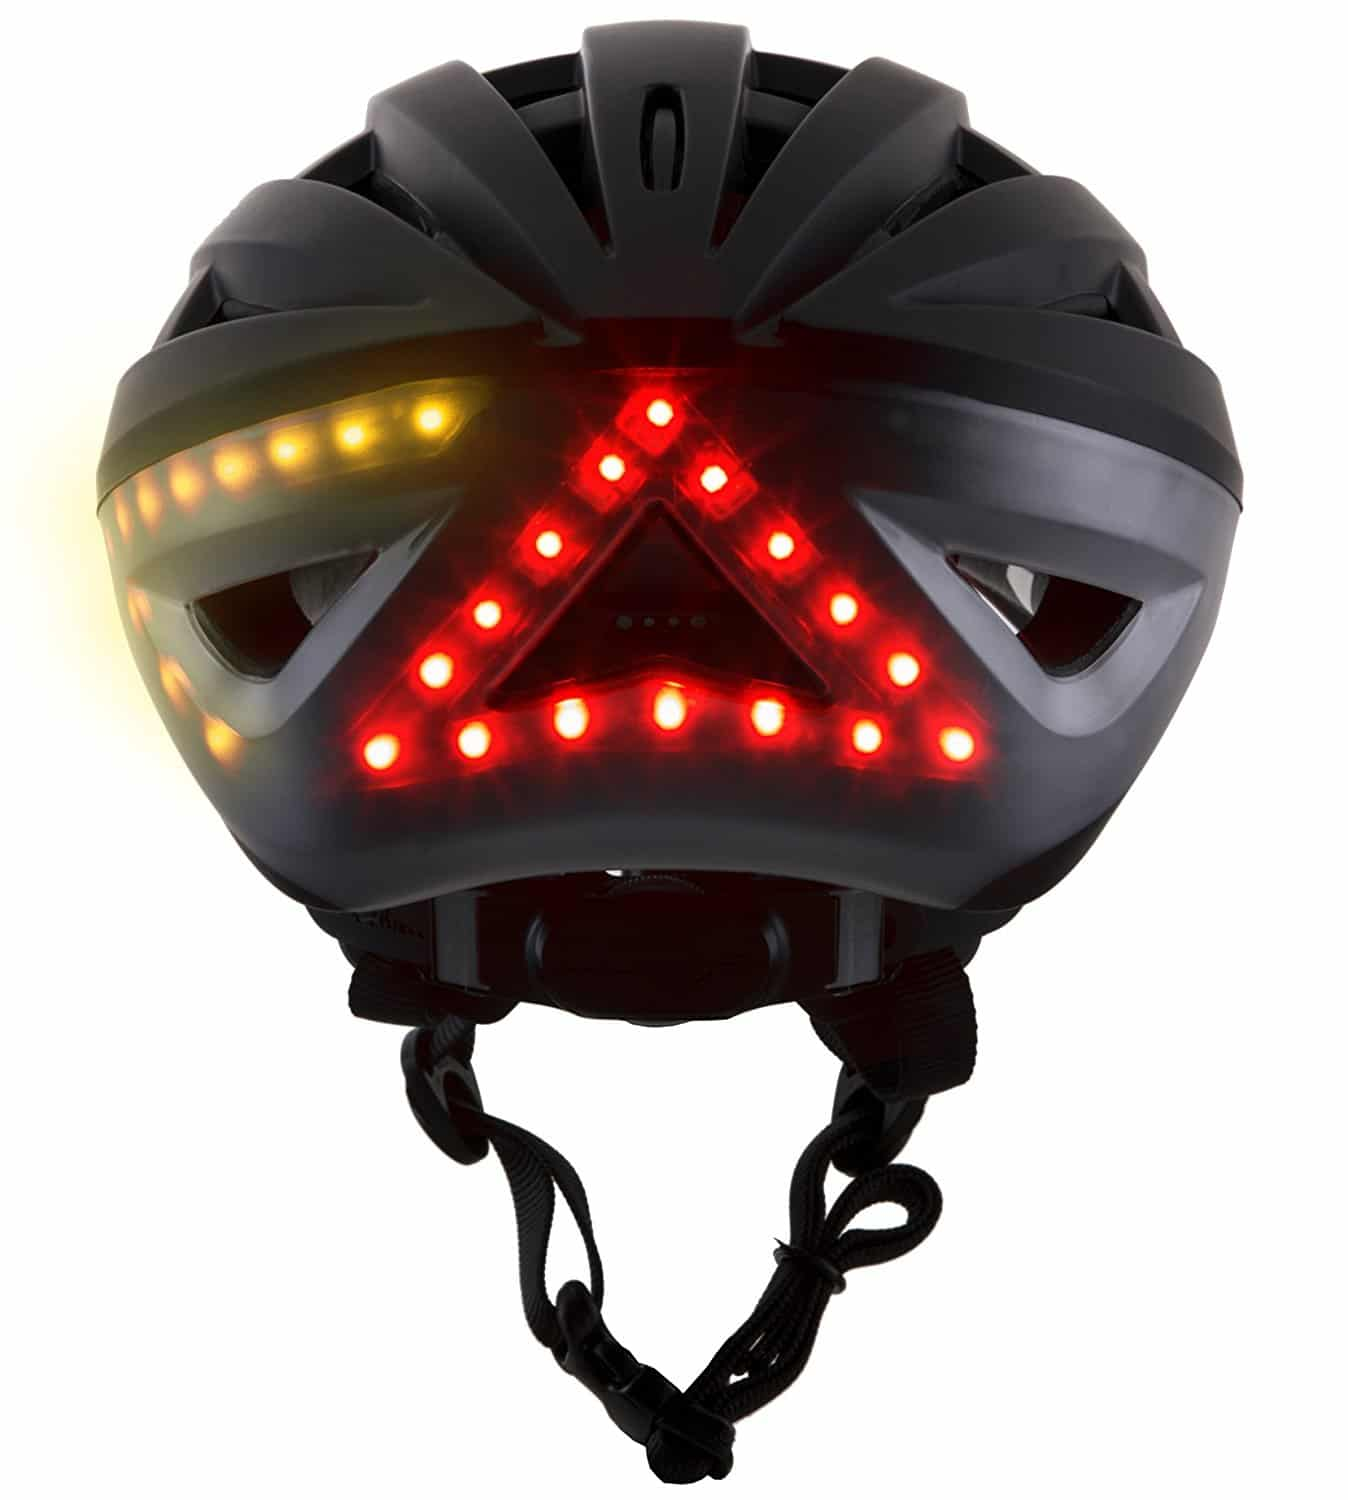 Best smart bike helmets